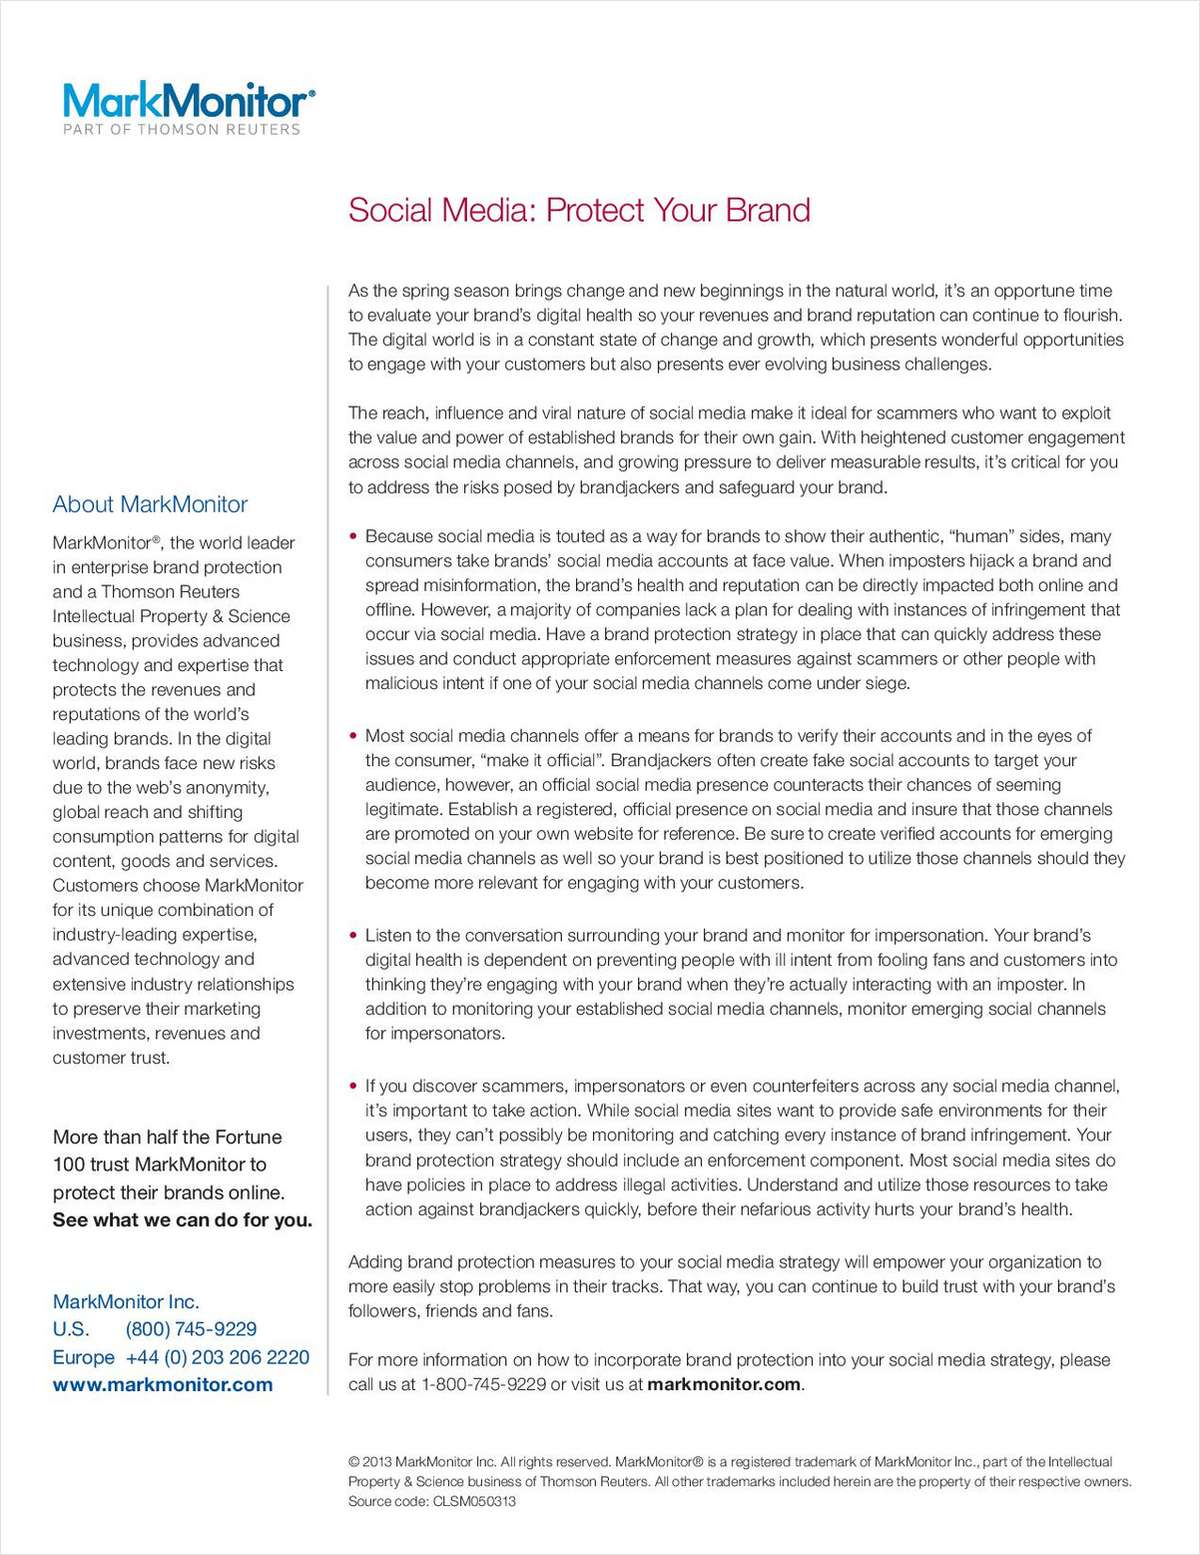 Key Strategies for Protecting Your Brand in Social Media